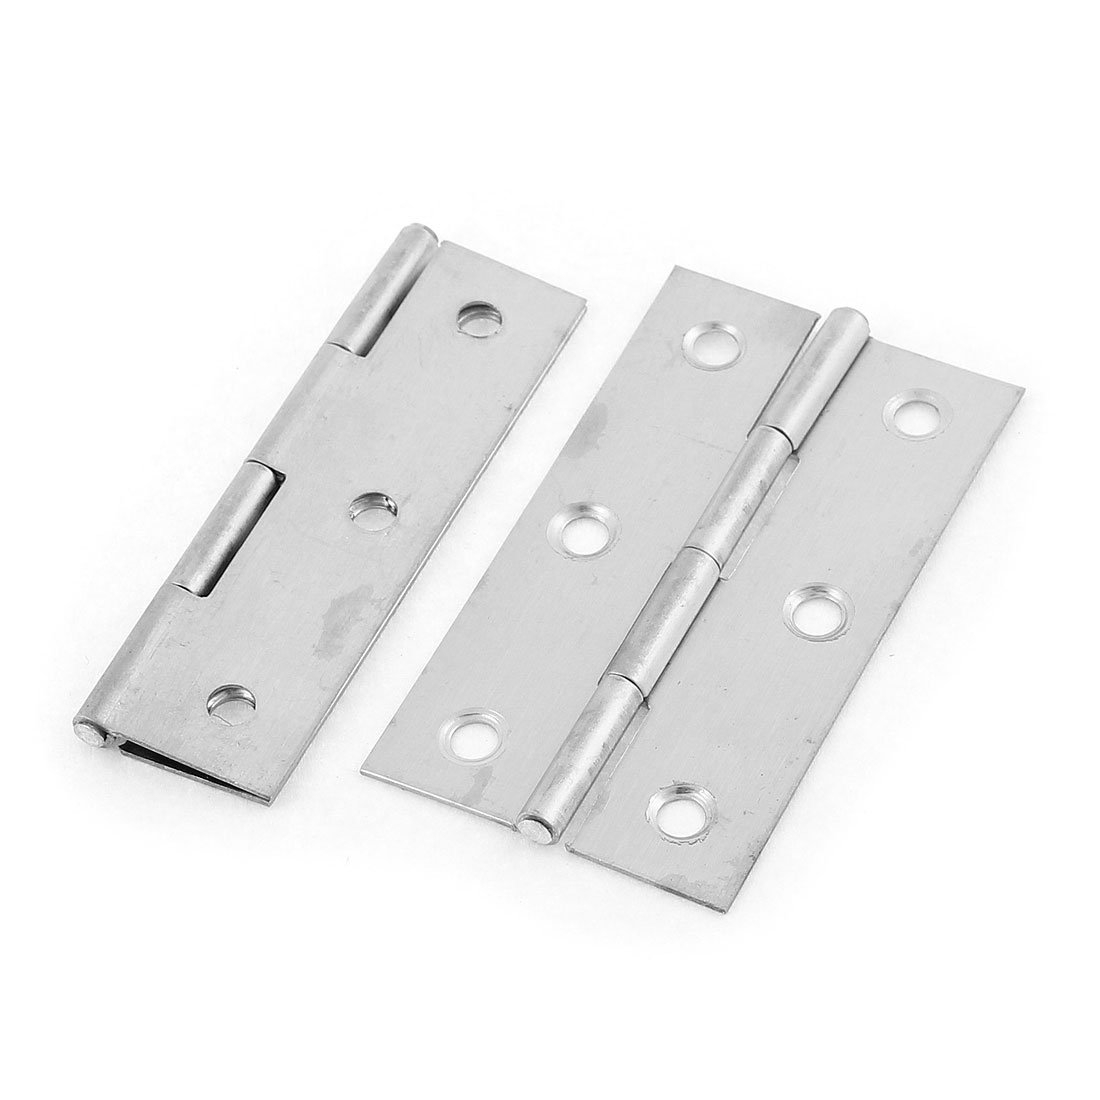 2 Pcs 66mmx39mm Stainless Steel Foldable Closet Cabinet Door Butt Hinge